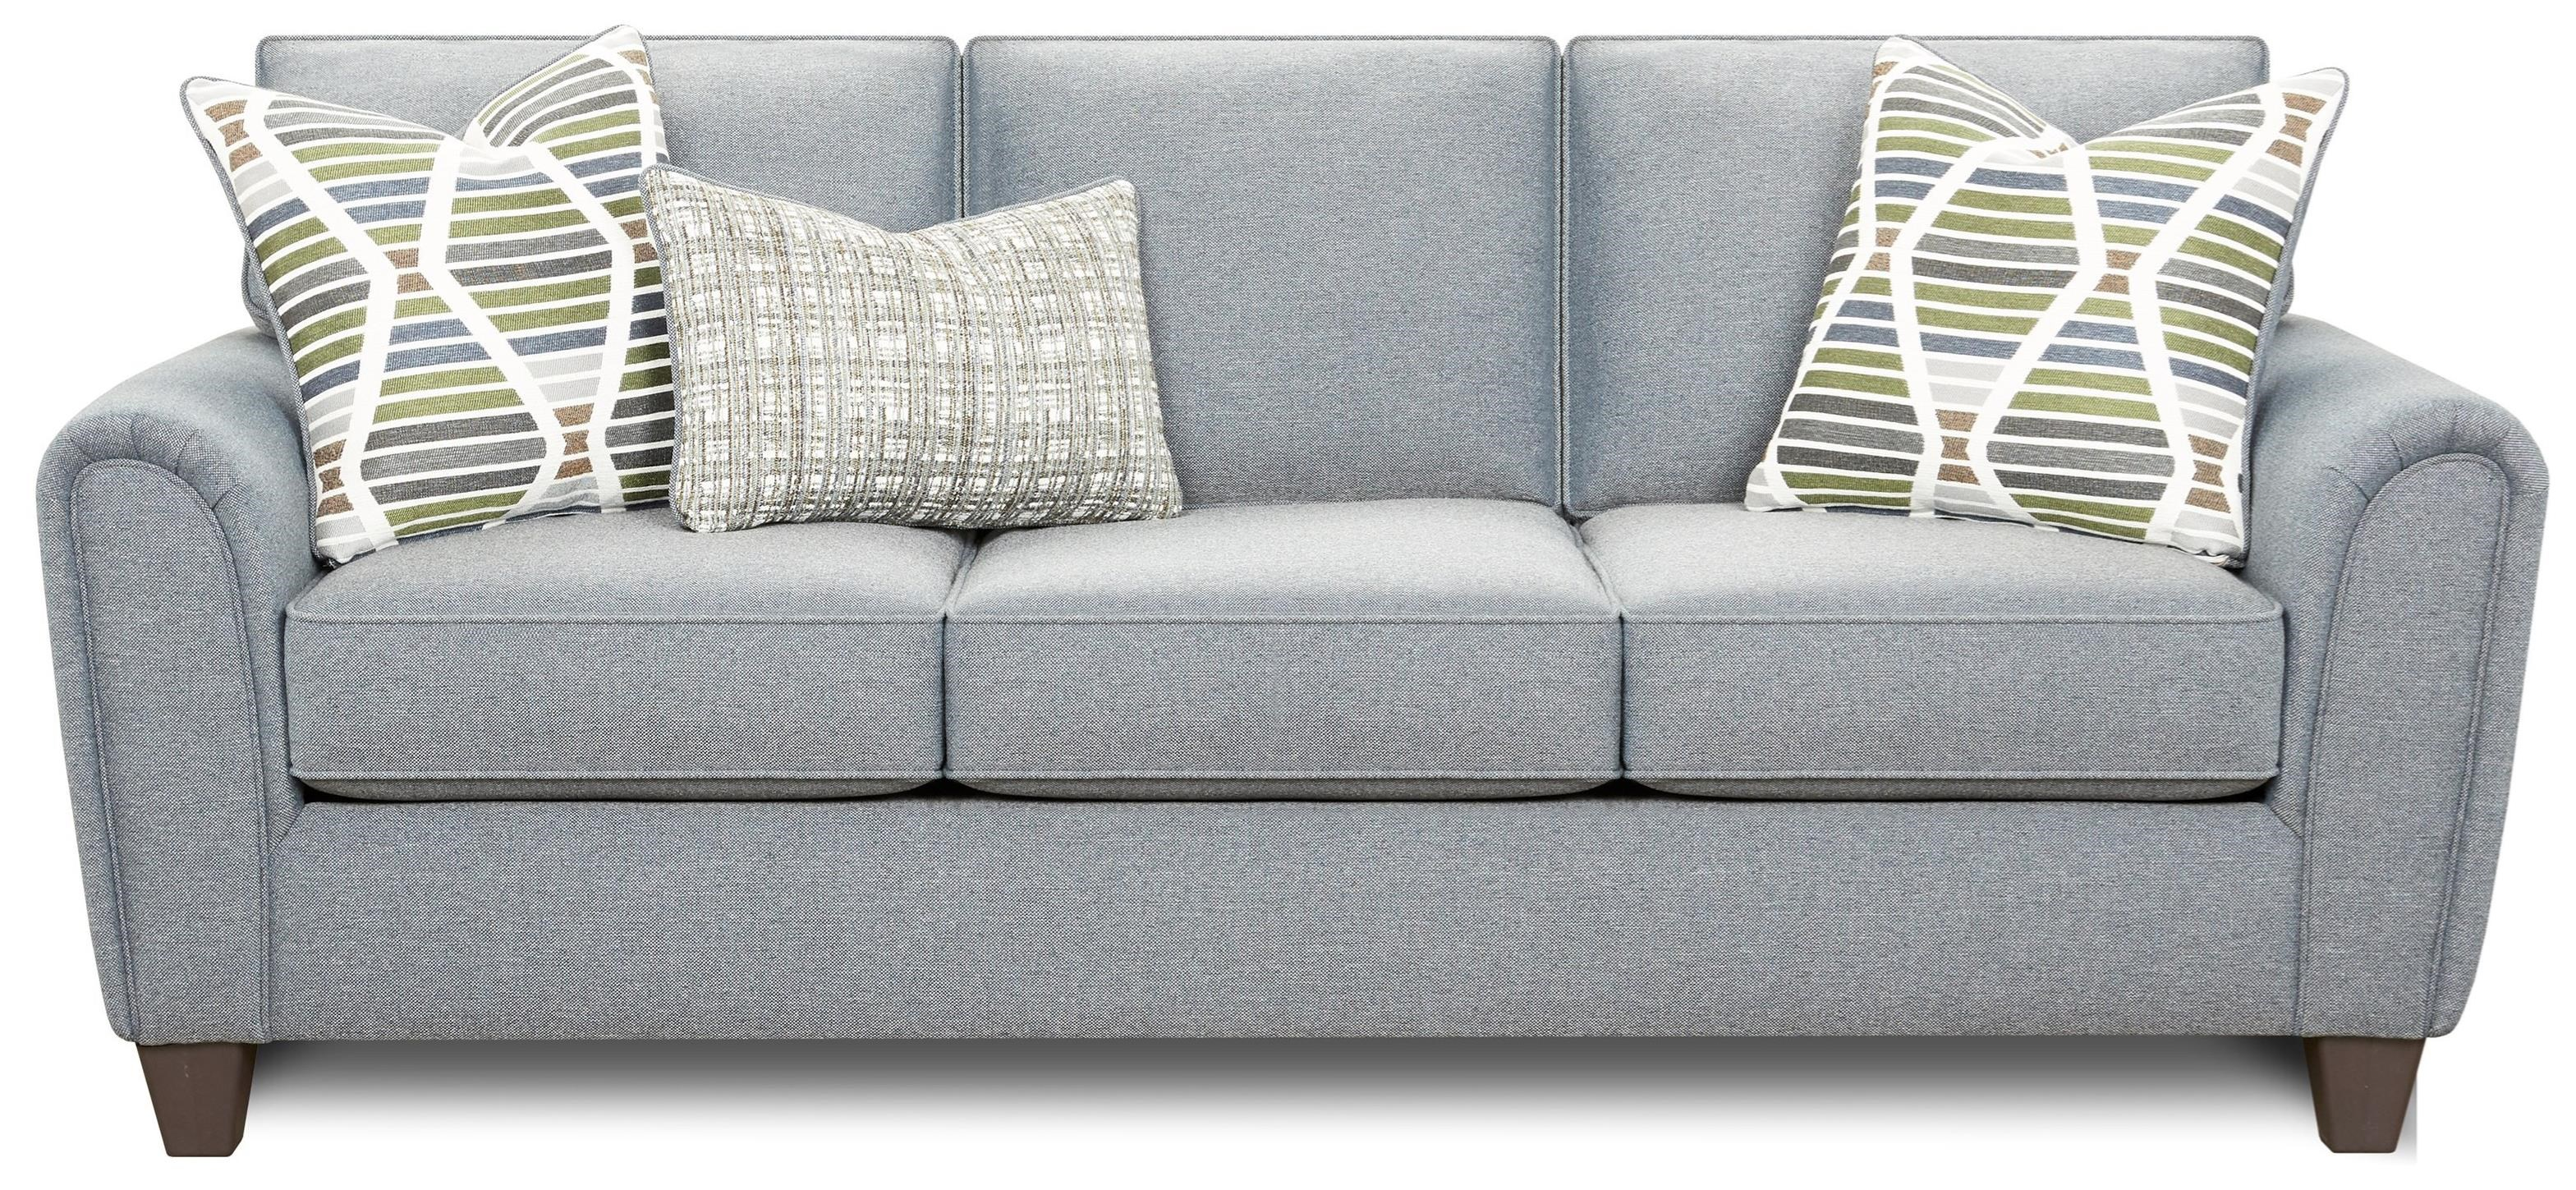 49-00 Sofa by Fusion Furniture at Prime Brothers Furniture